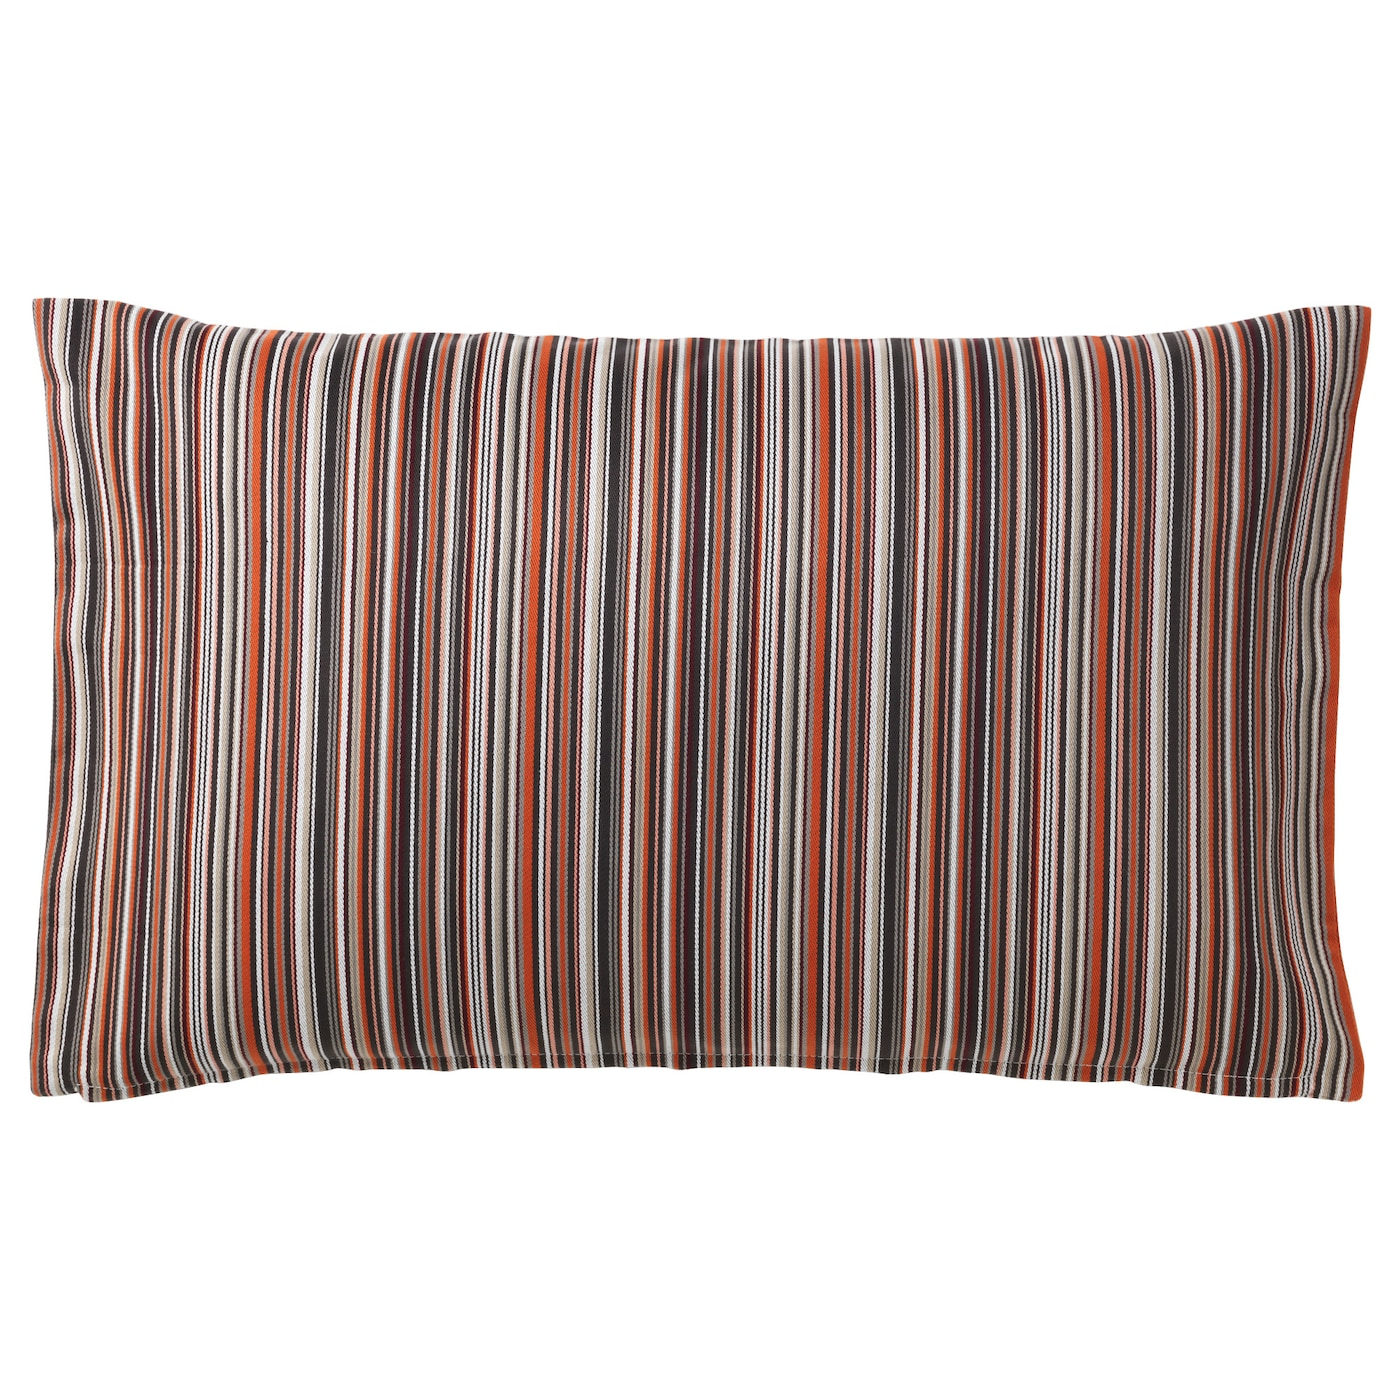 strandkÅl cushion cover orangered x cm  ikea - ikea strandkÅl cushion cover the zipper makes the cover easy to remove